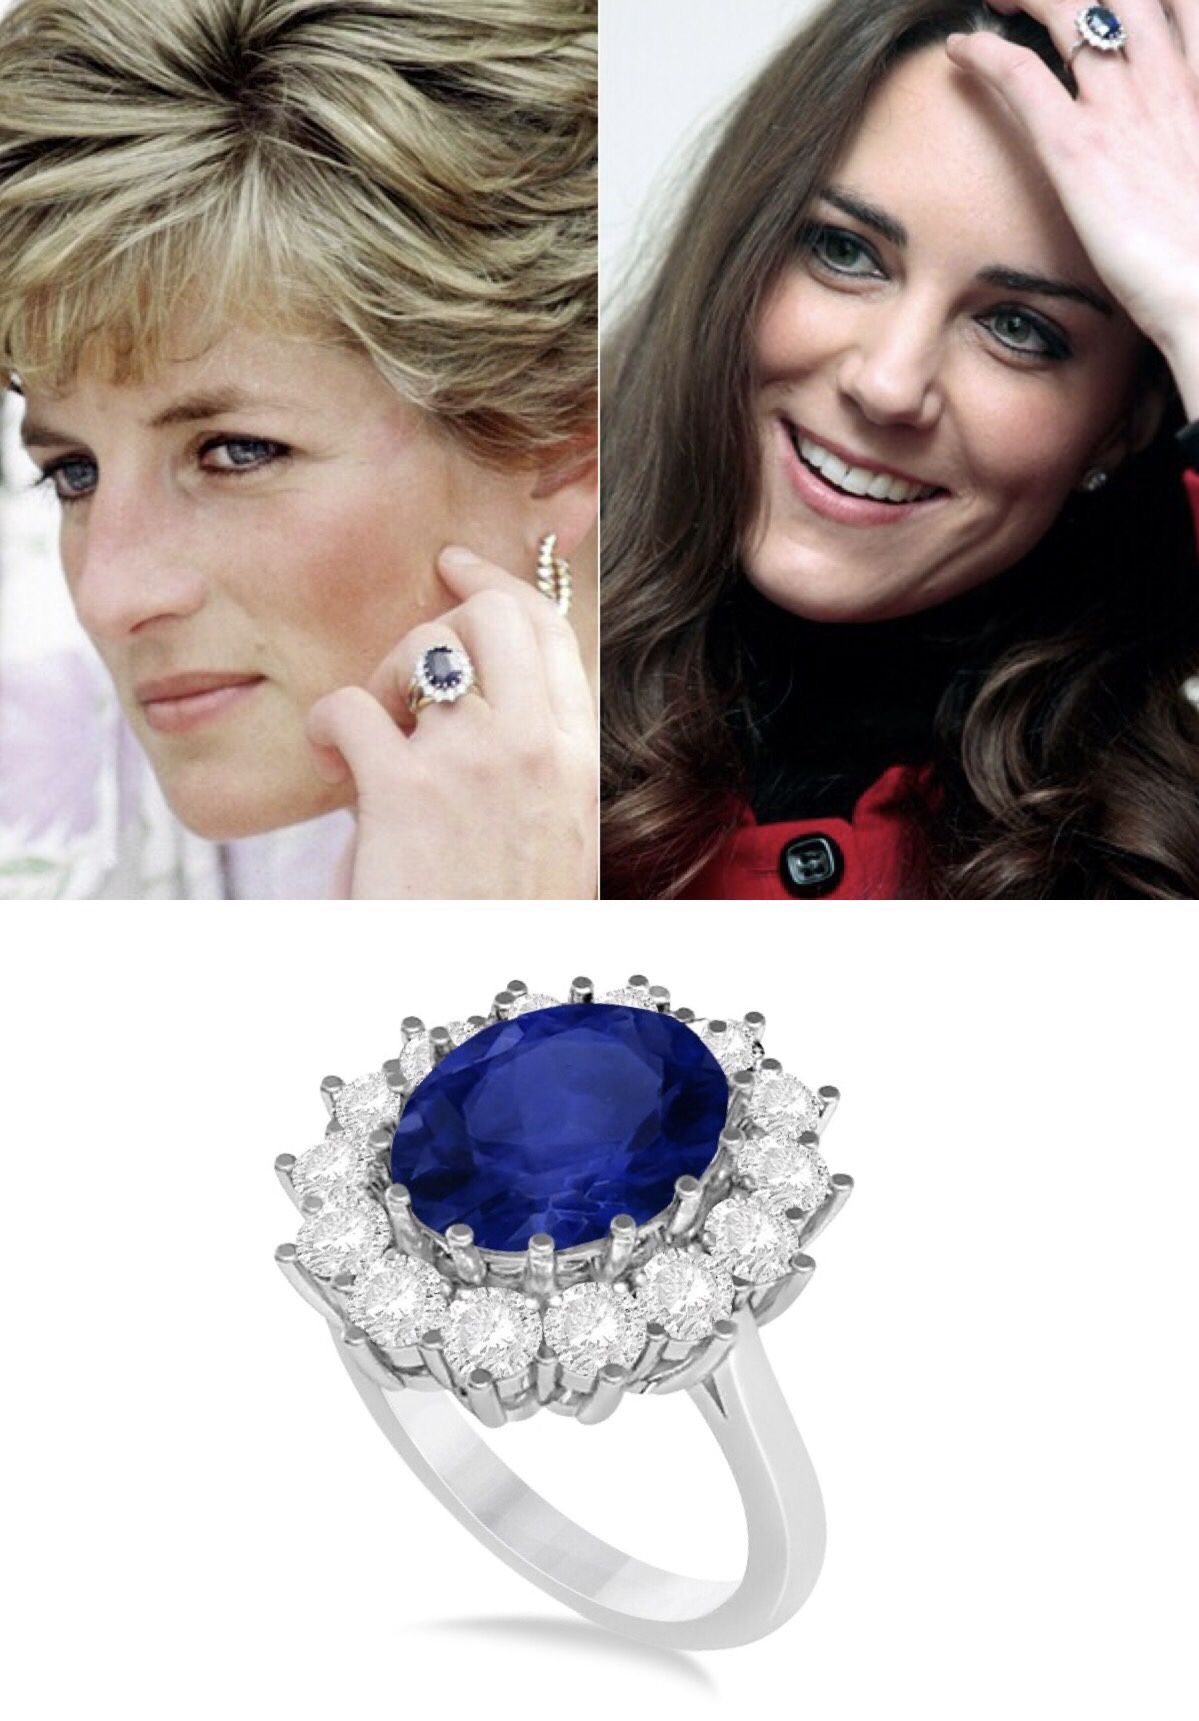 Oval Blue Sapphire Diamond Accented Ring 14k White Gold 5 40ctw In 2020 Princess Diana Engagement Ring Kate Middleton Engagement Ring Kate Middleton Jewelry